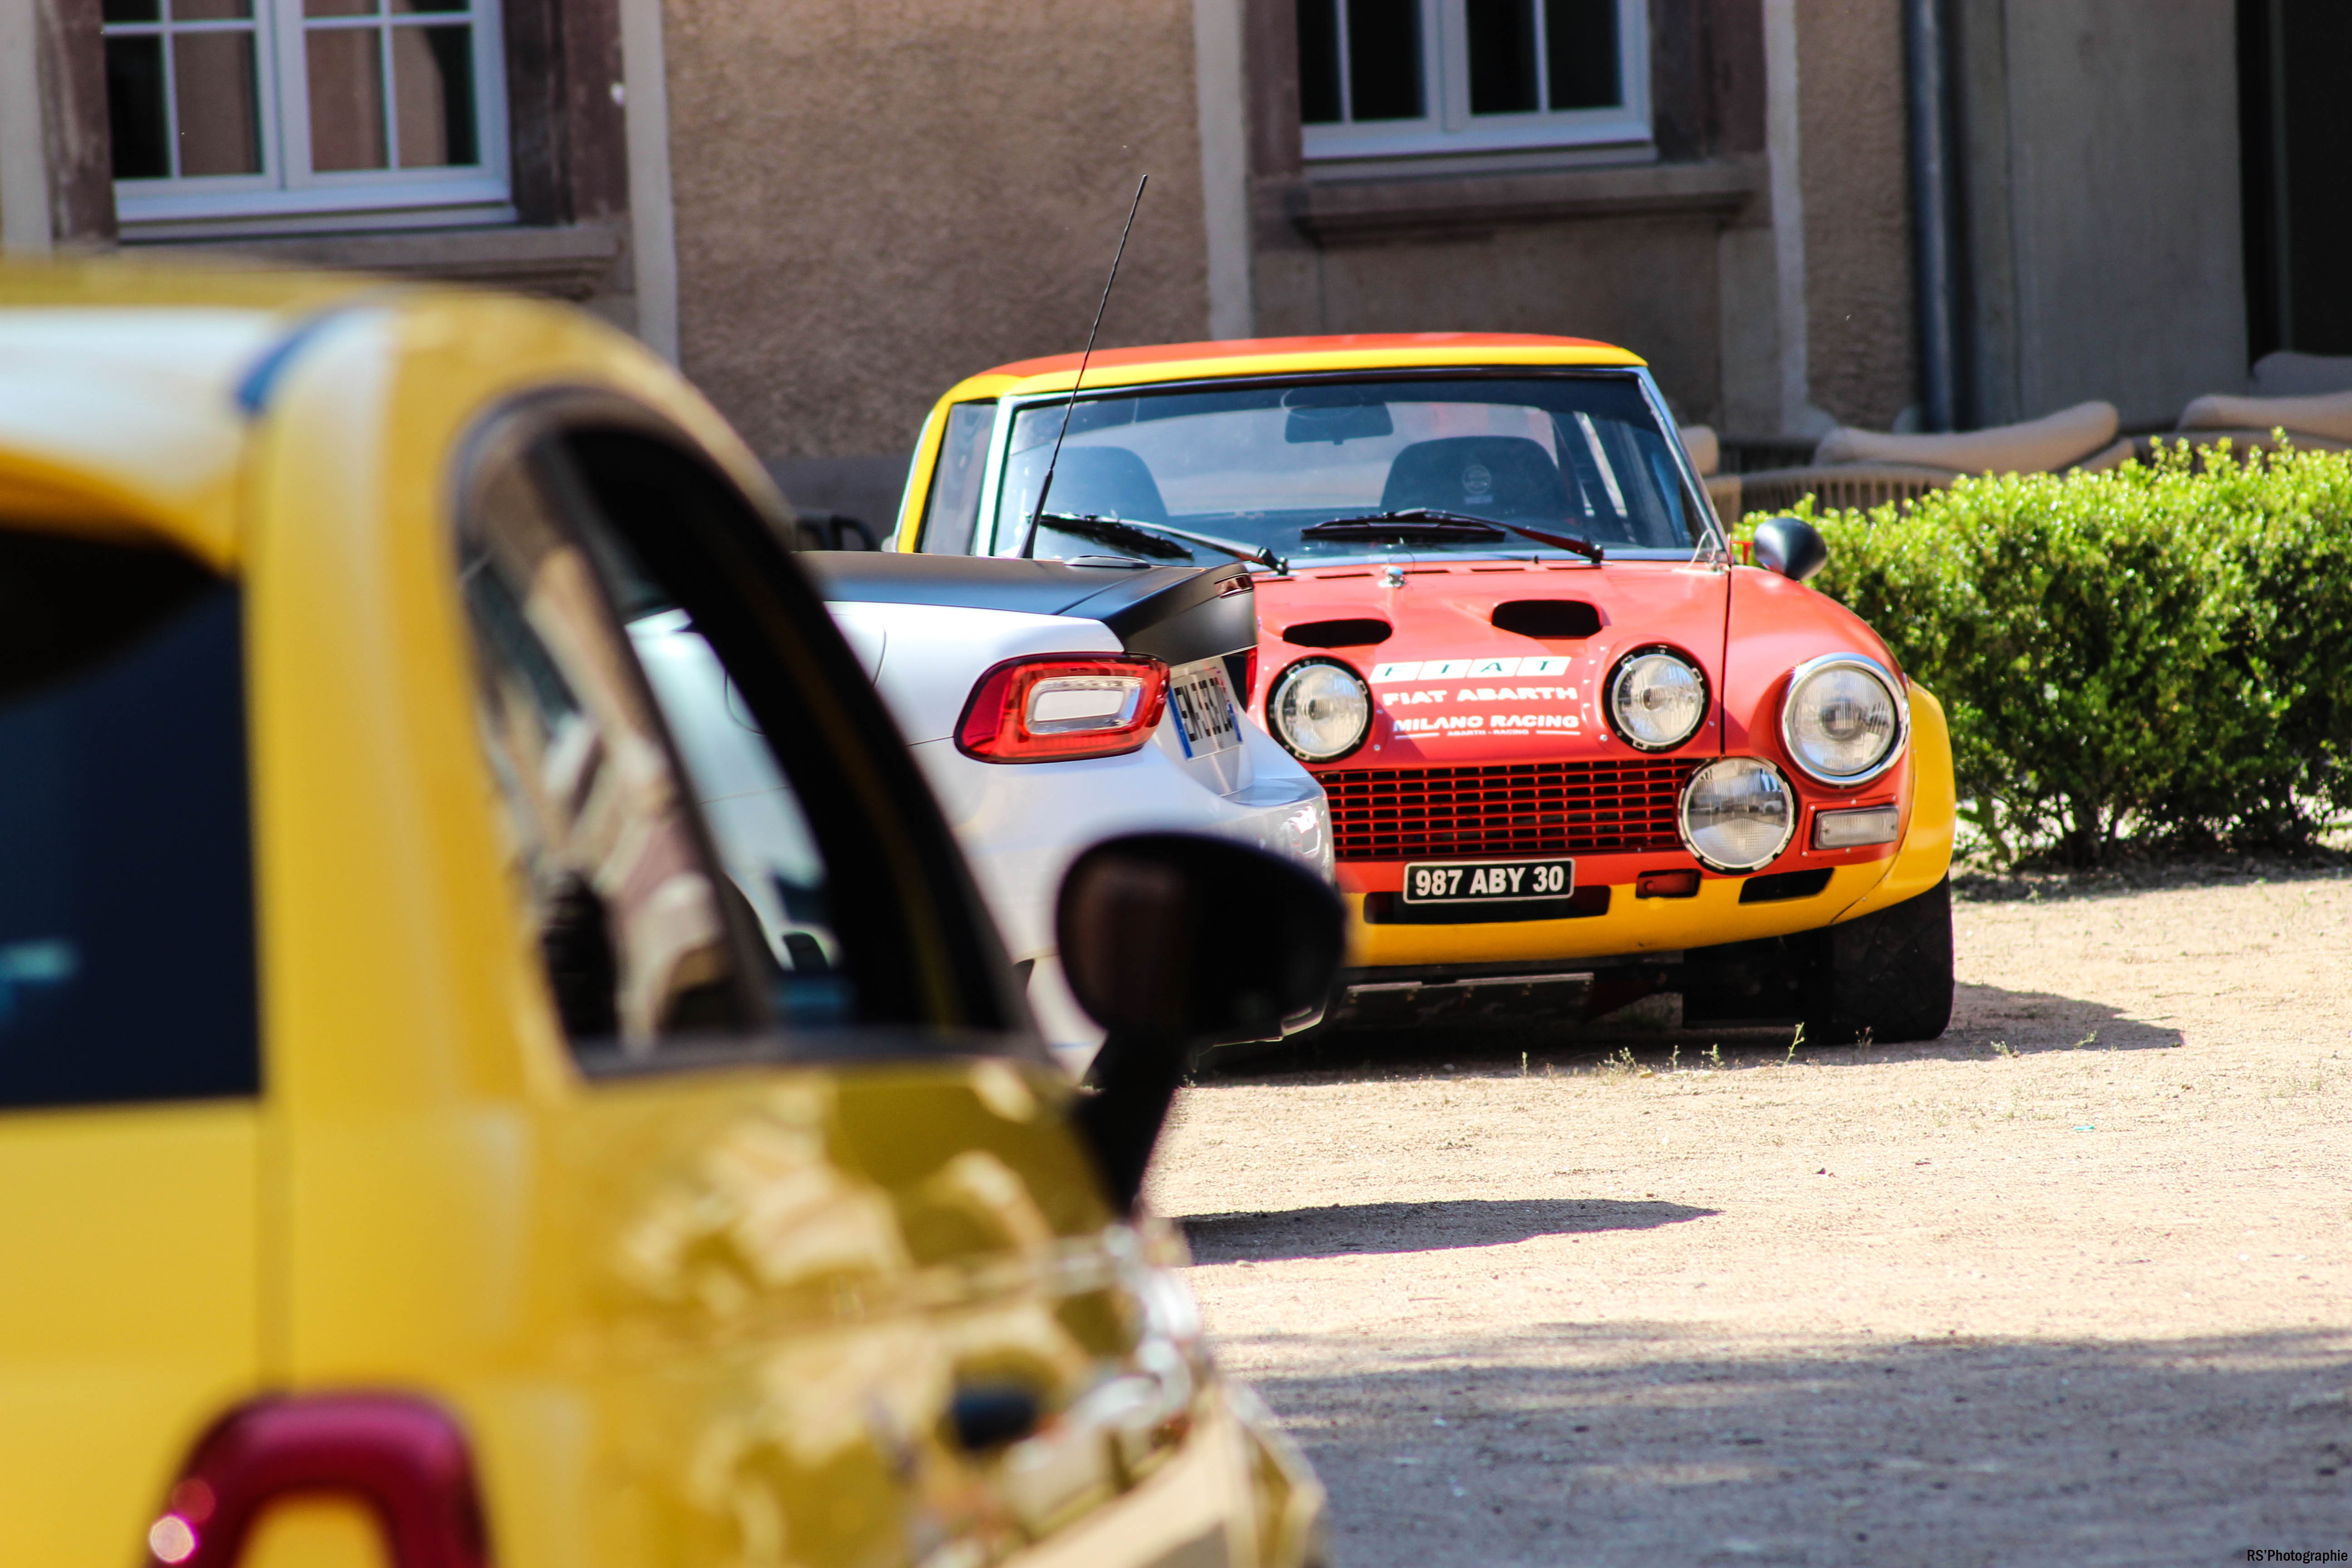 abarth124spider20-abarth-124-rallye-avant-front-Arnaud Demasier-RSPhotographie